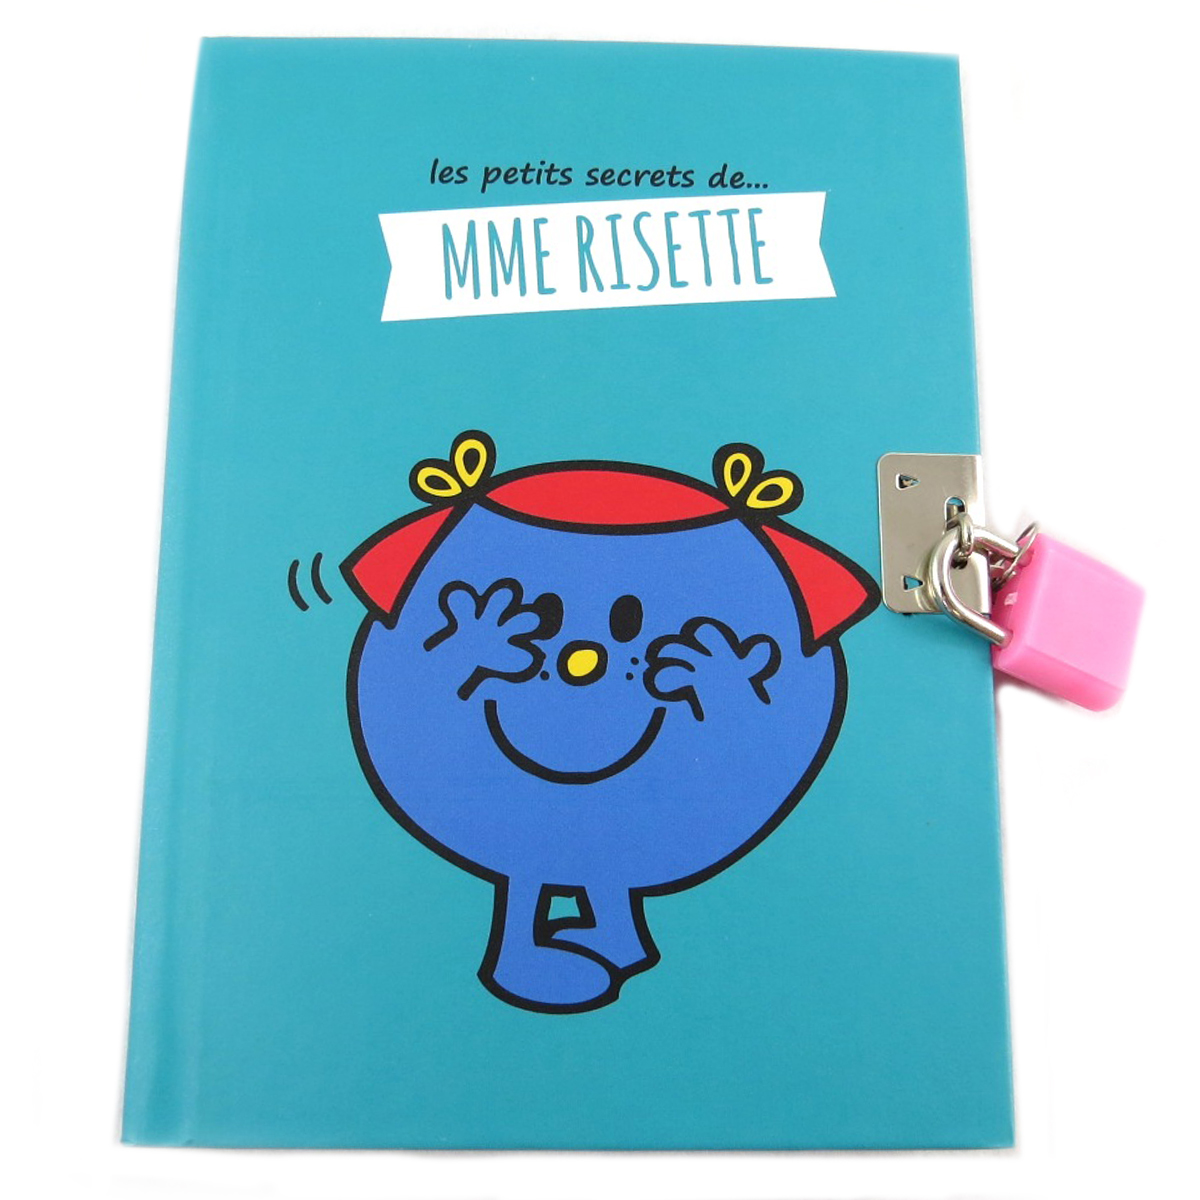 Journal Intime \'Monsieur Madame\' turquoise (Mme Risette) - 15x11 cm - [Q0622]